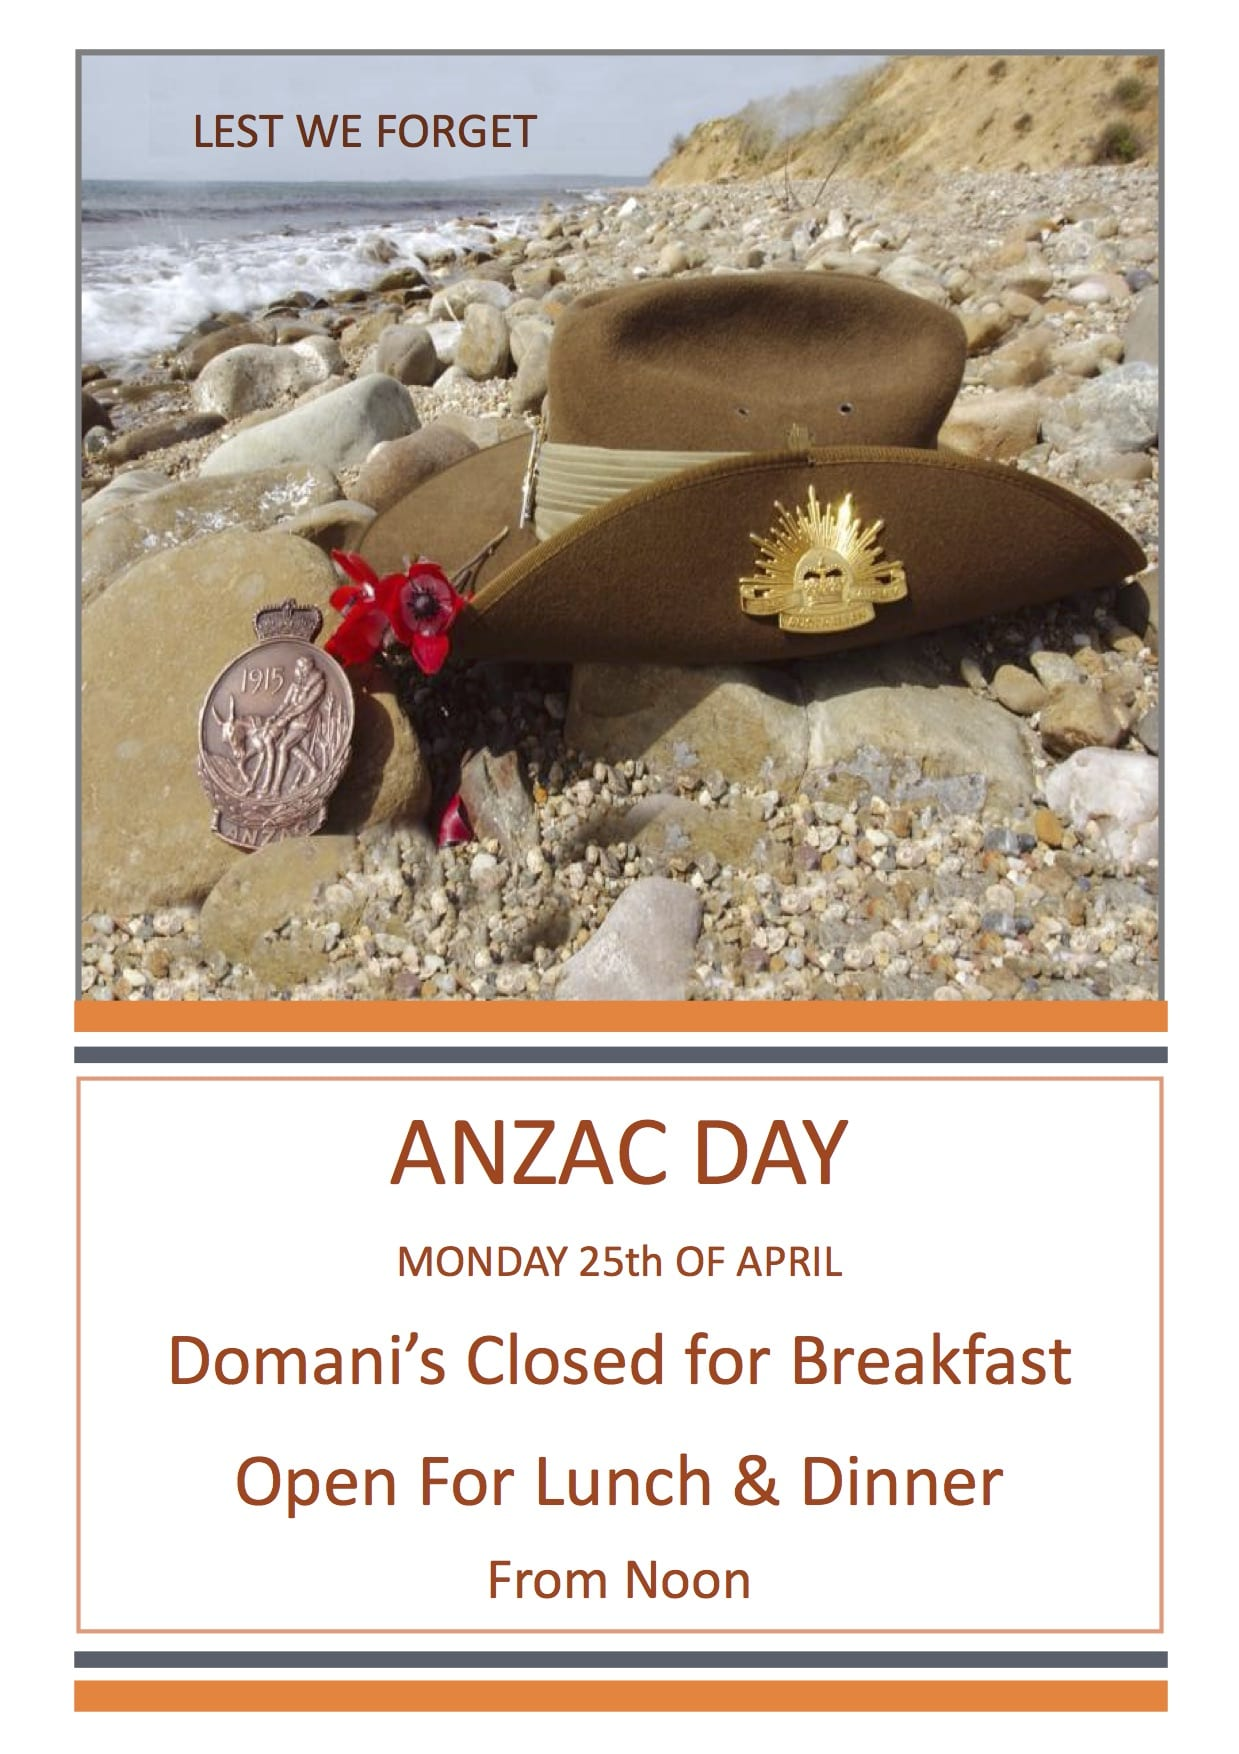 2016 ANZAC DAY POSTER